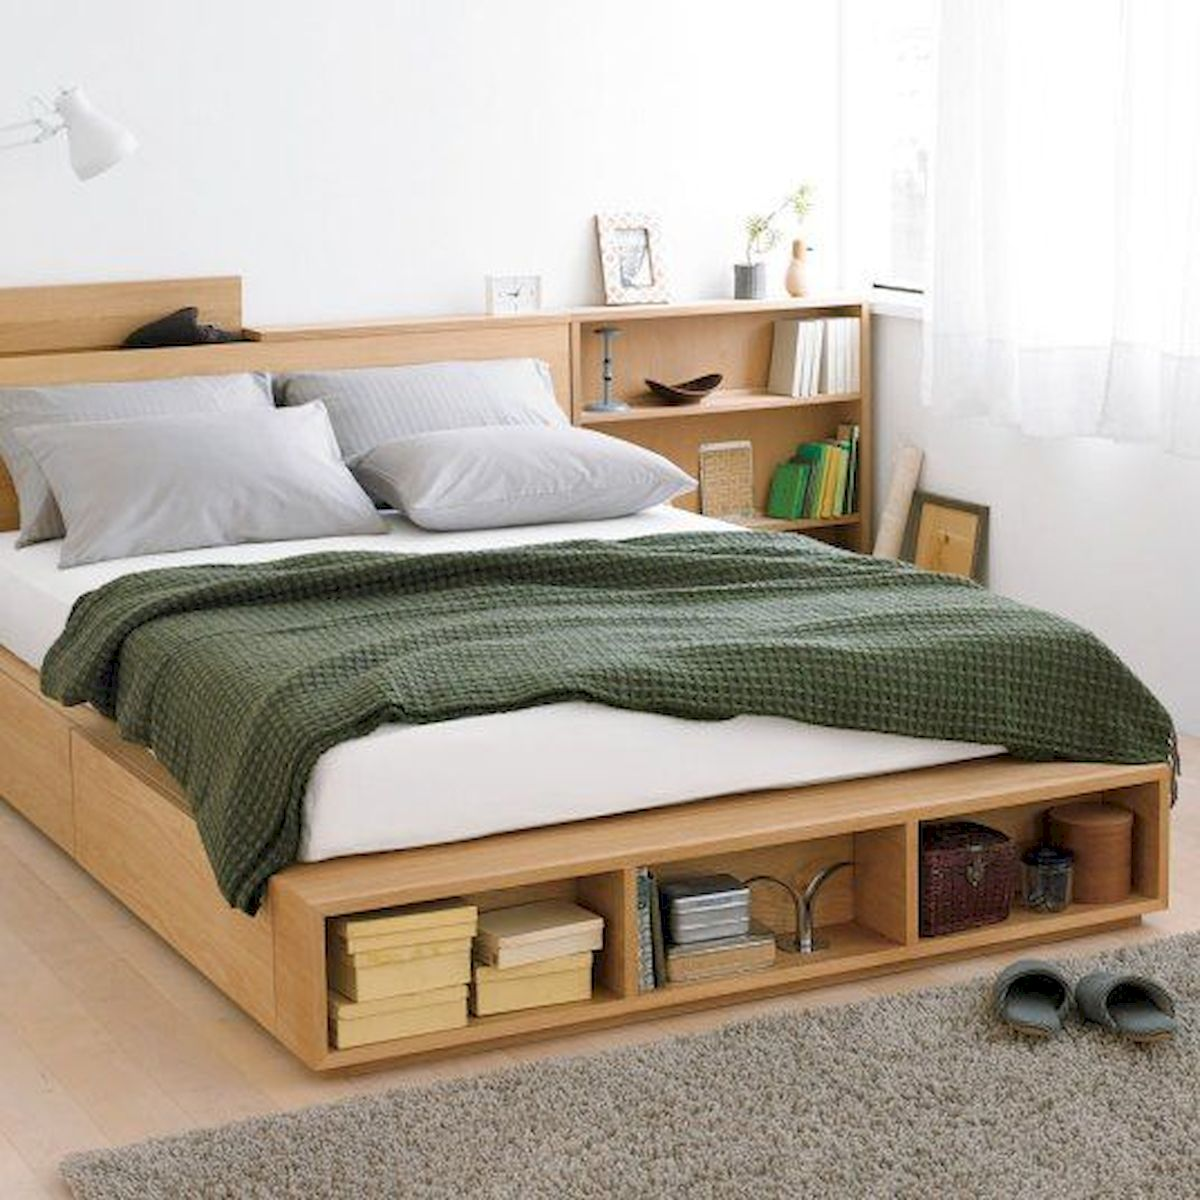 60 Brilliant Space Saving Ideas For Small Bedroom (26)